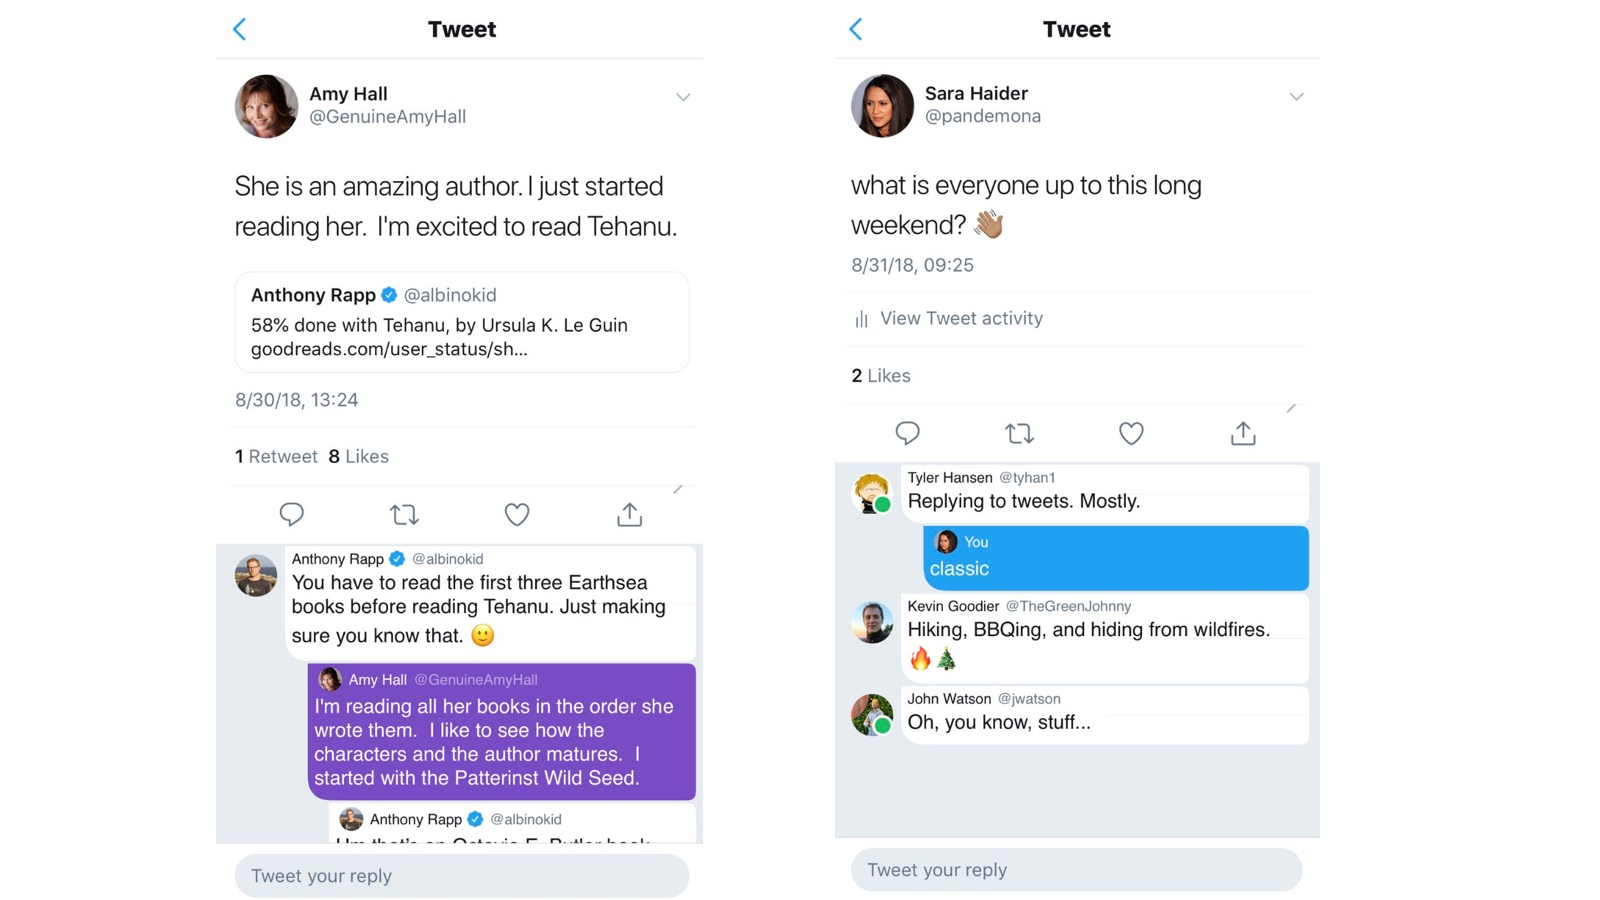 Twitter tests new threaded reply interface & status indicators to show who's online